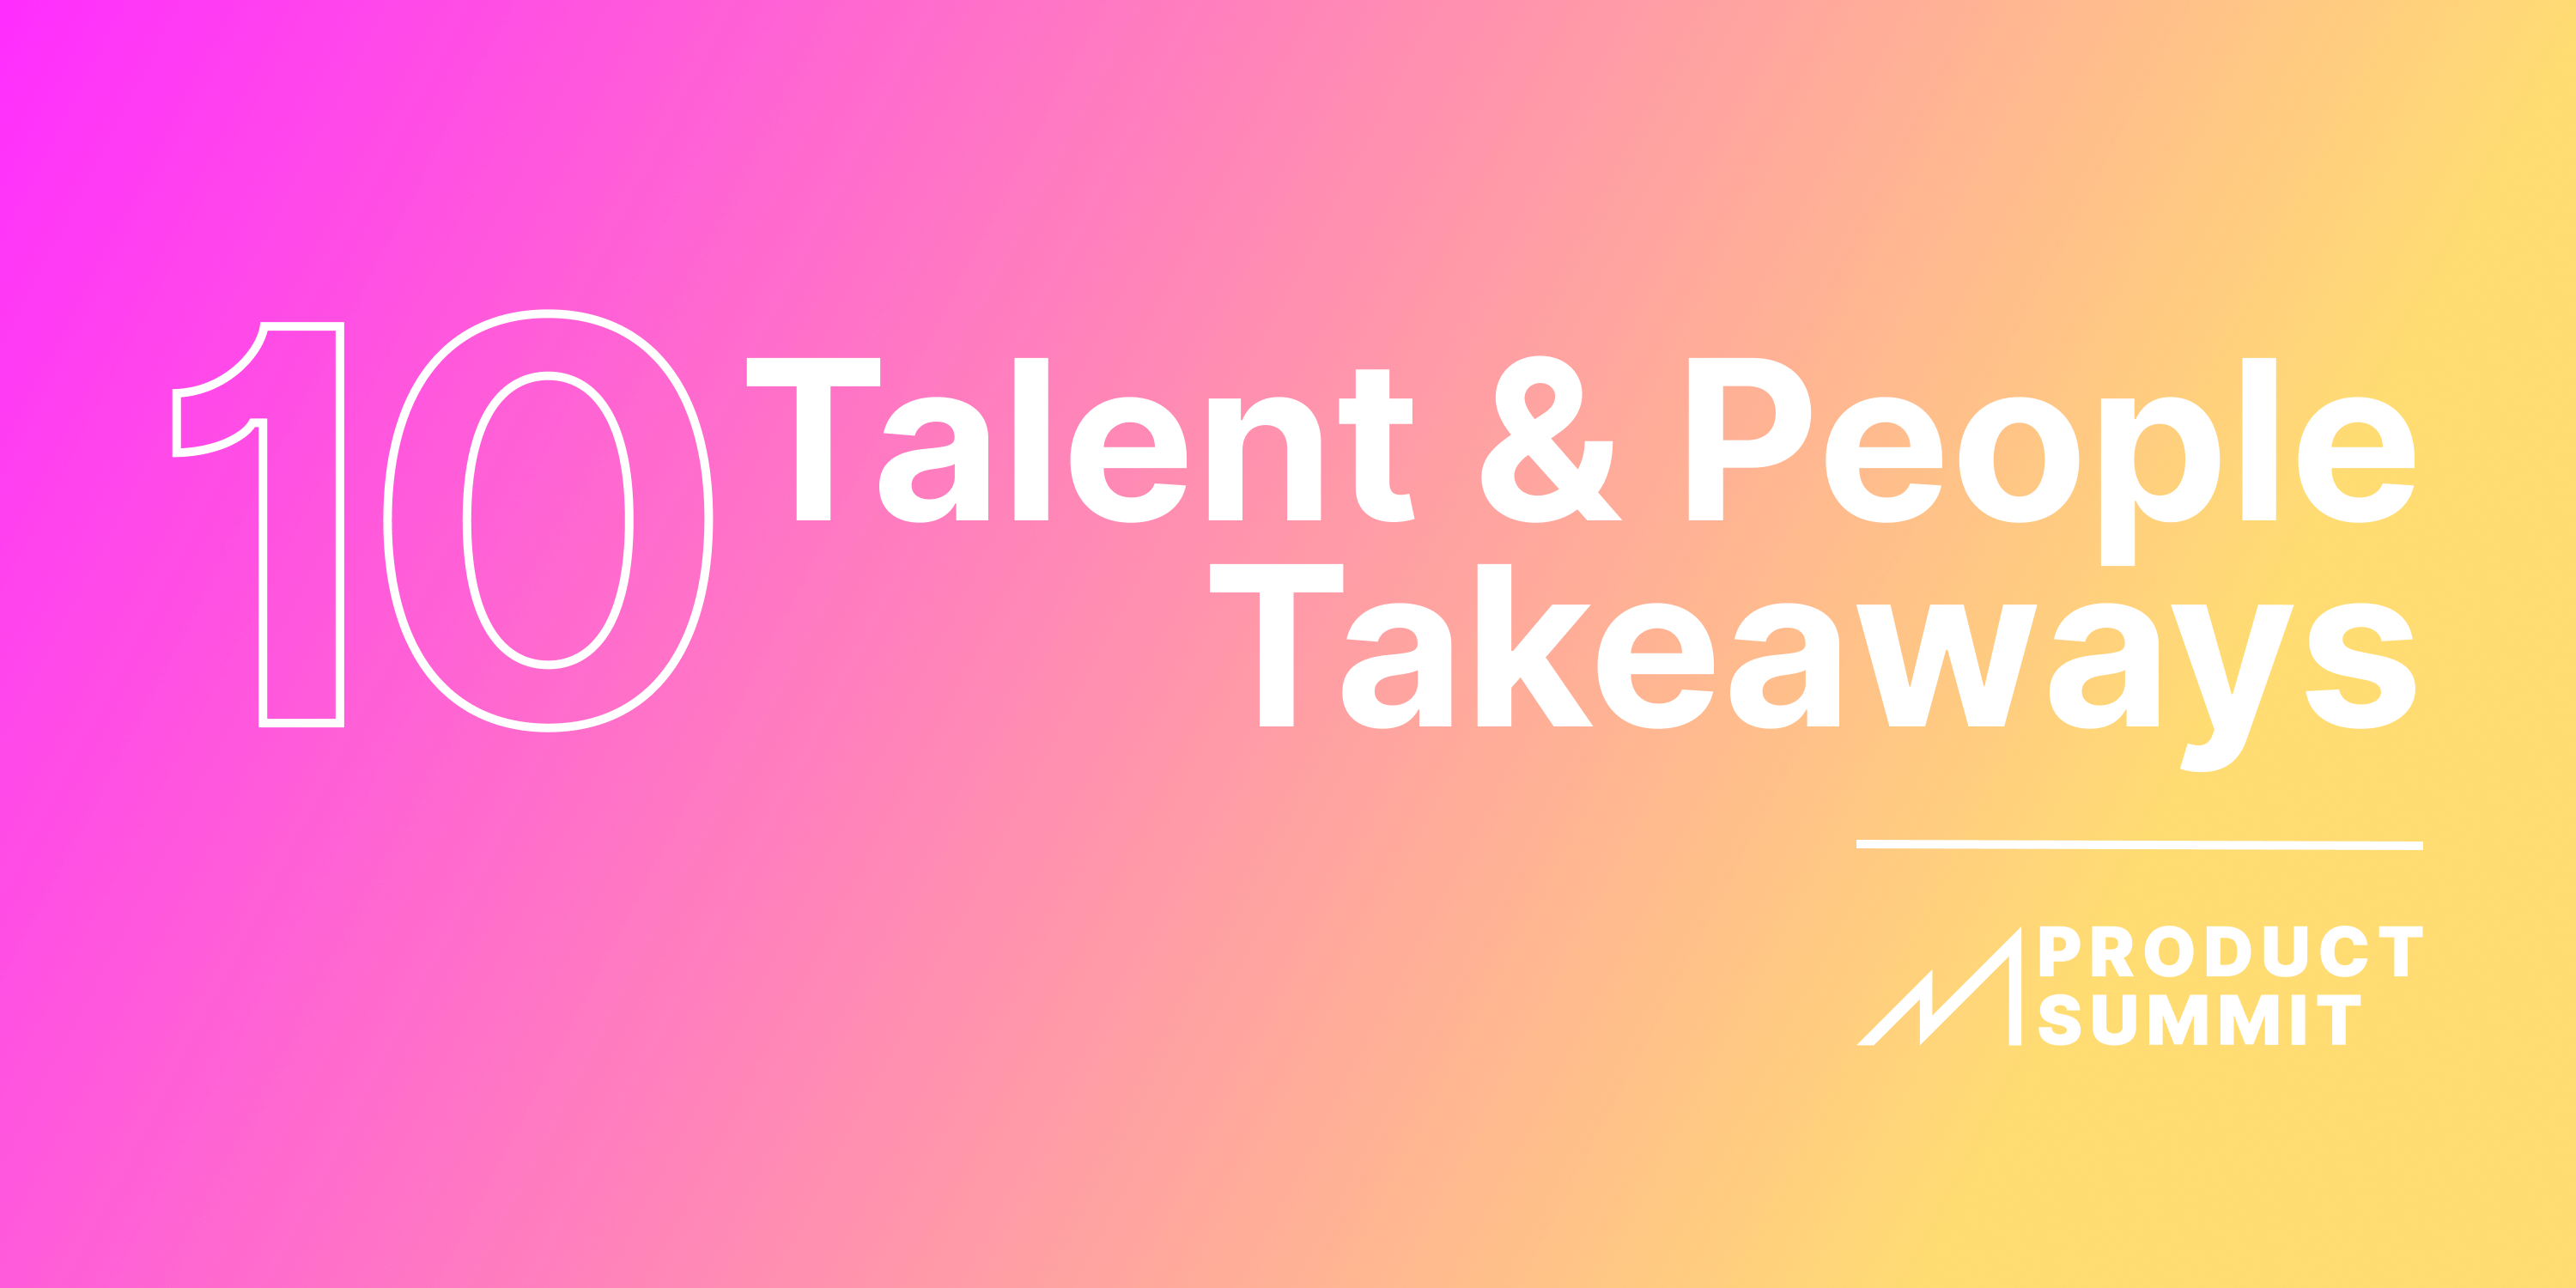 Talent and People Takeaway's: Seedcamp Product Summit 2021